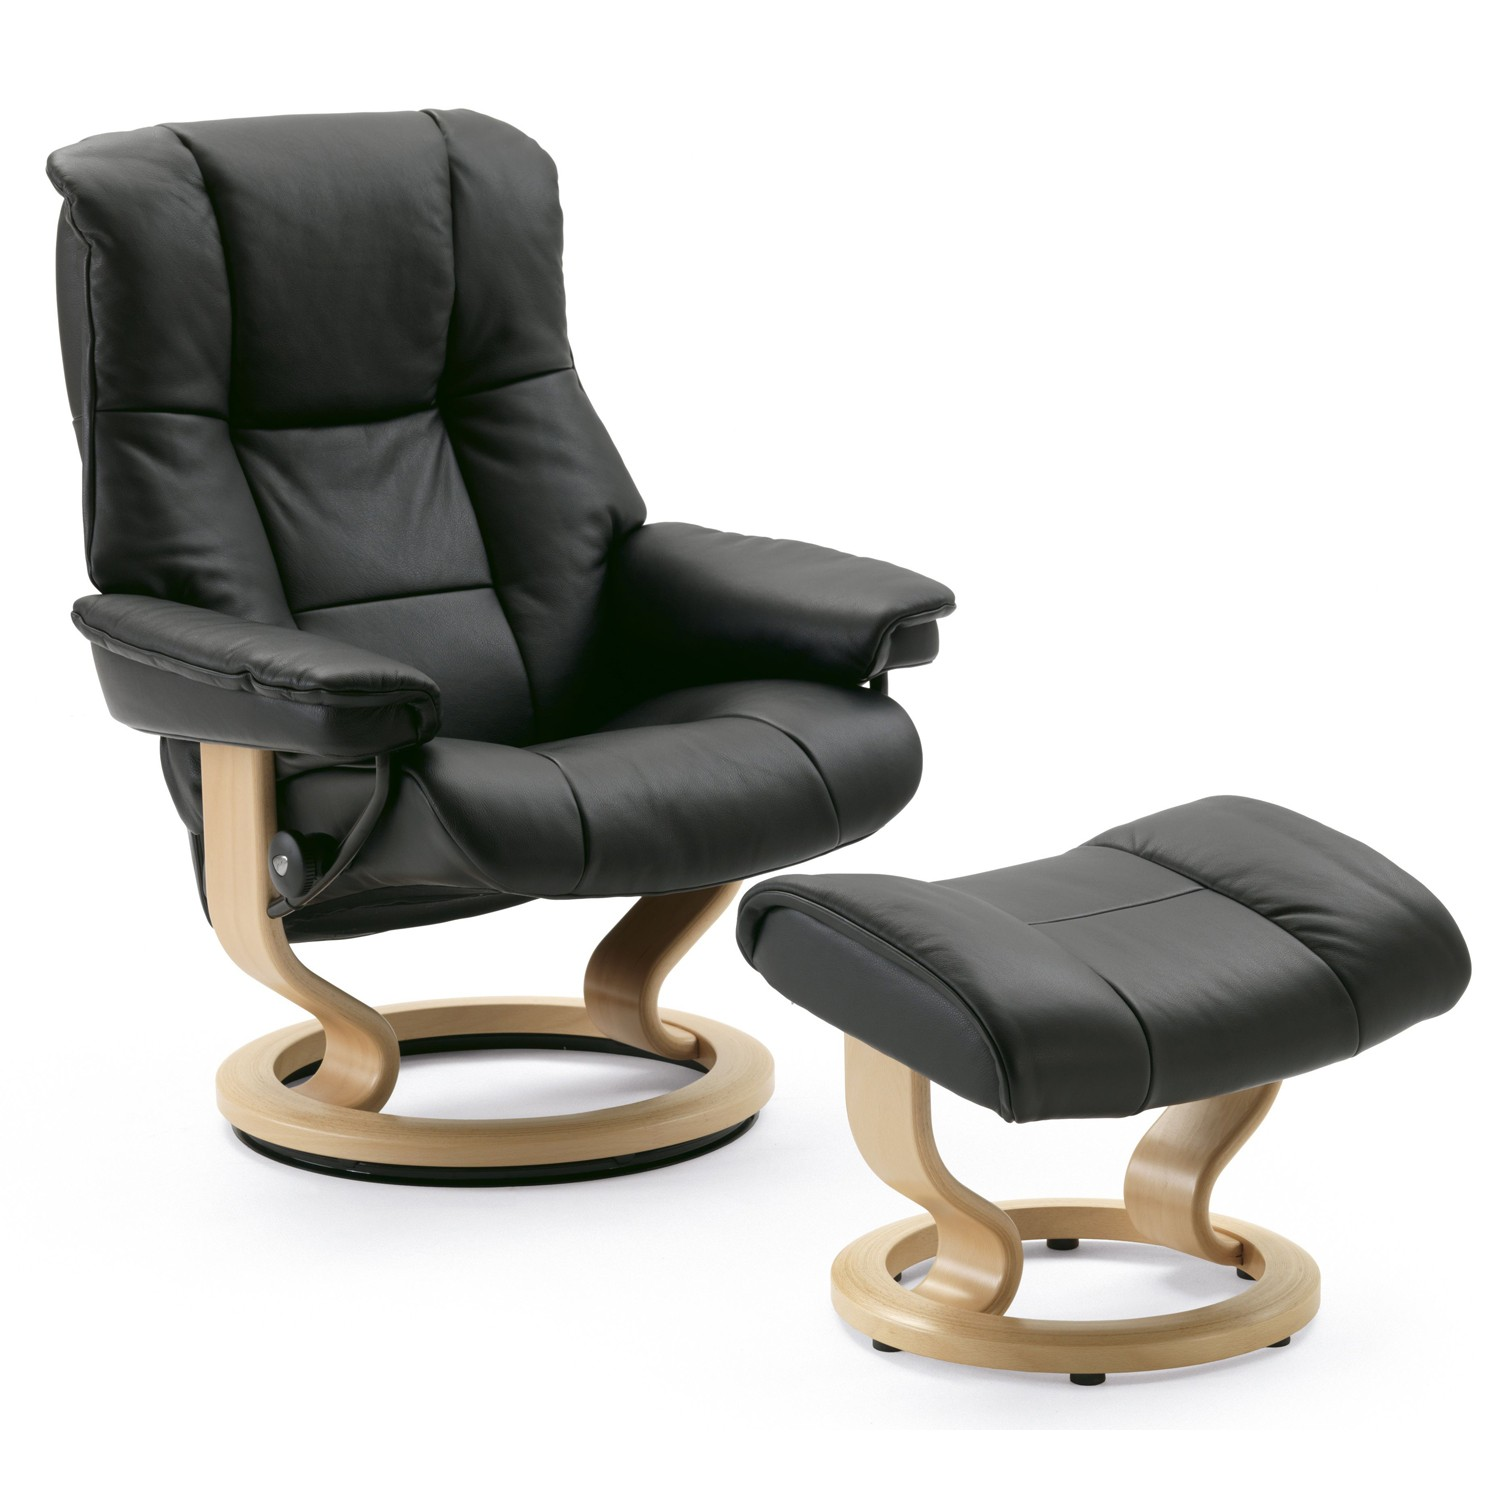 stressless mayfair small chair stool leekes. Black Bedroom Furniture Sets. Home Design Ideas